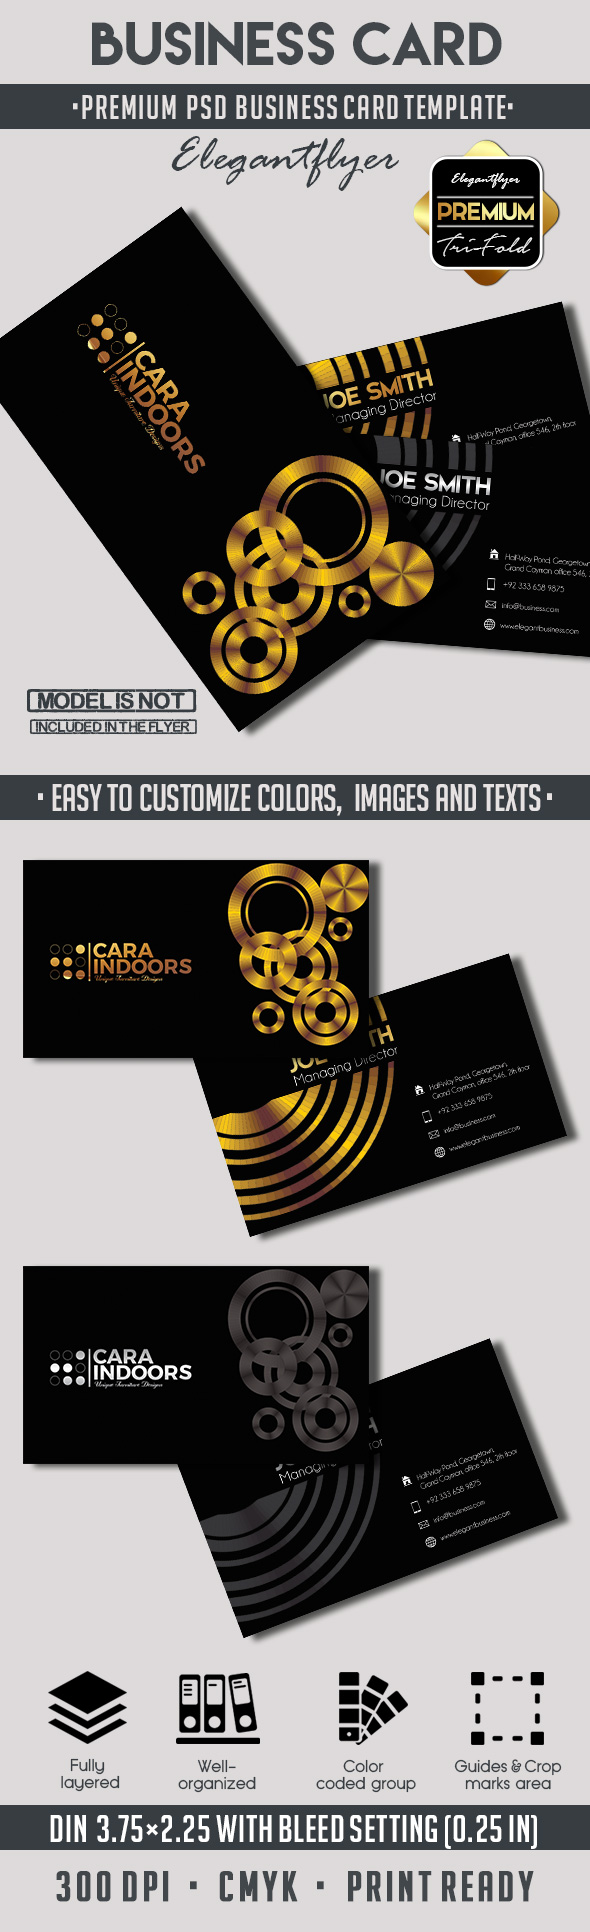 Business card – Premium PSD Template